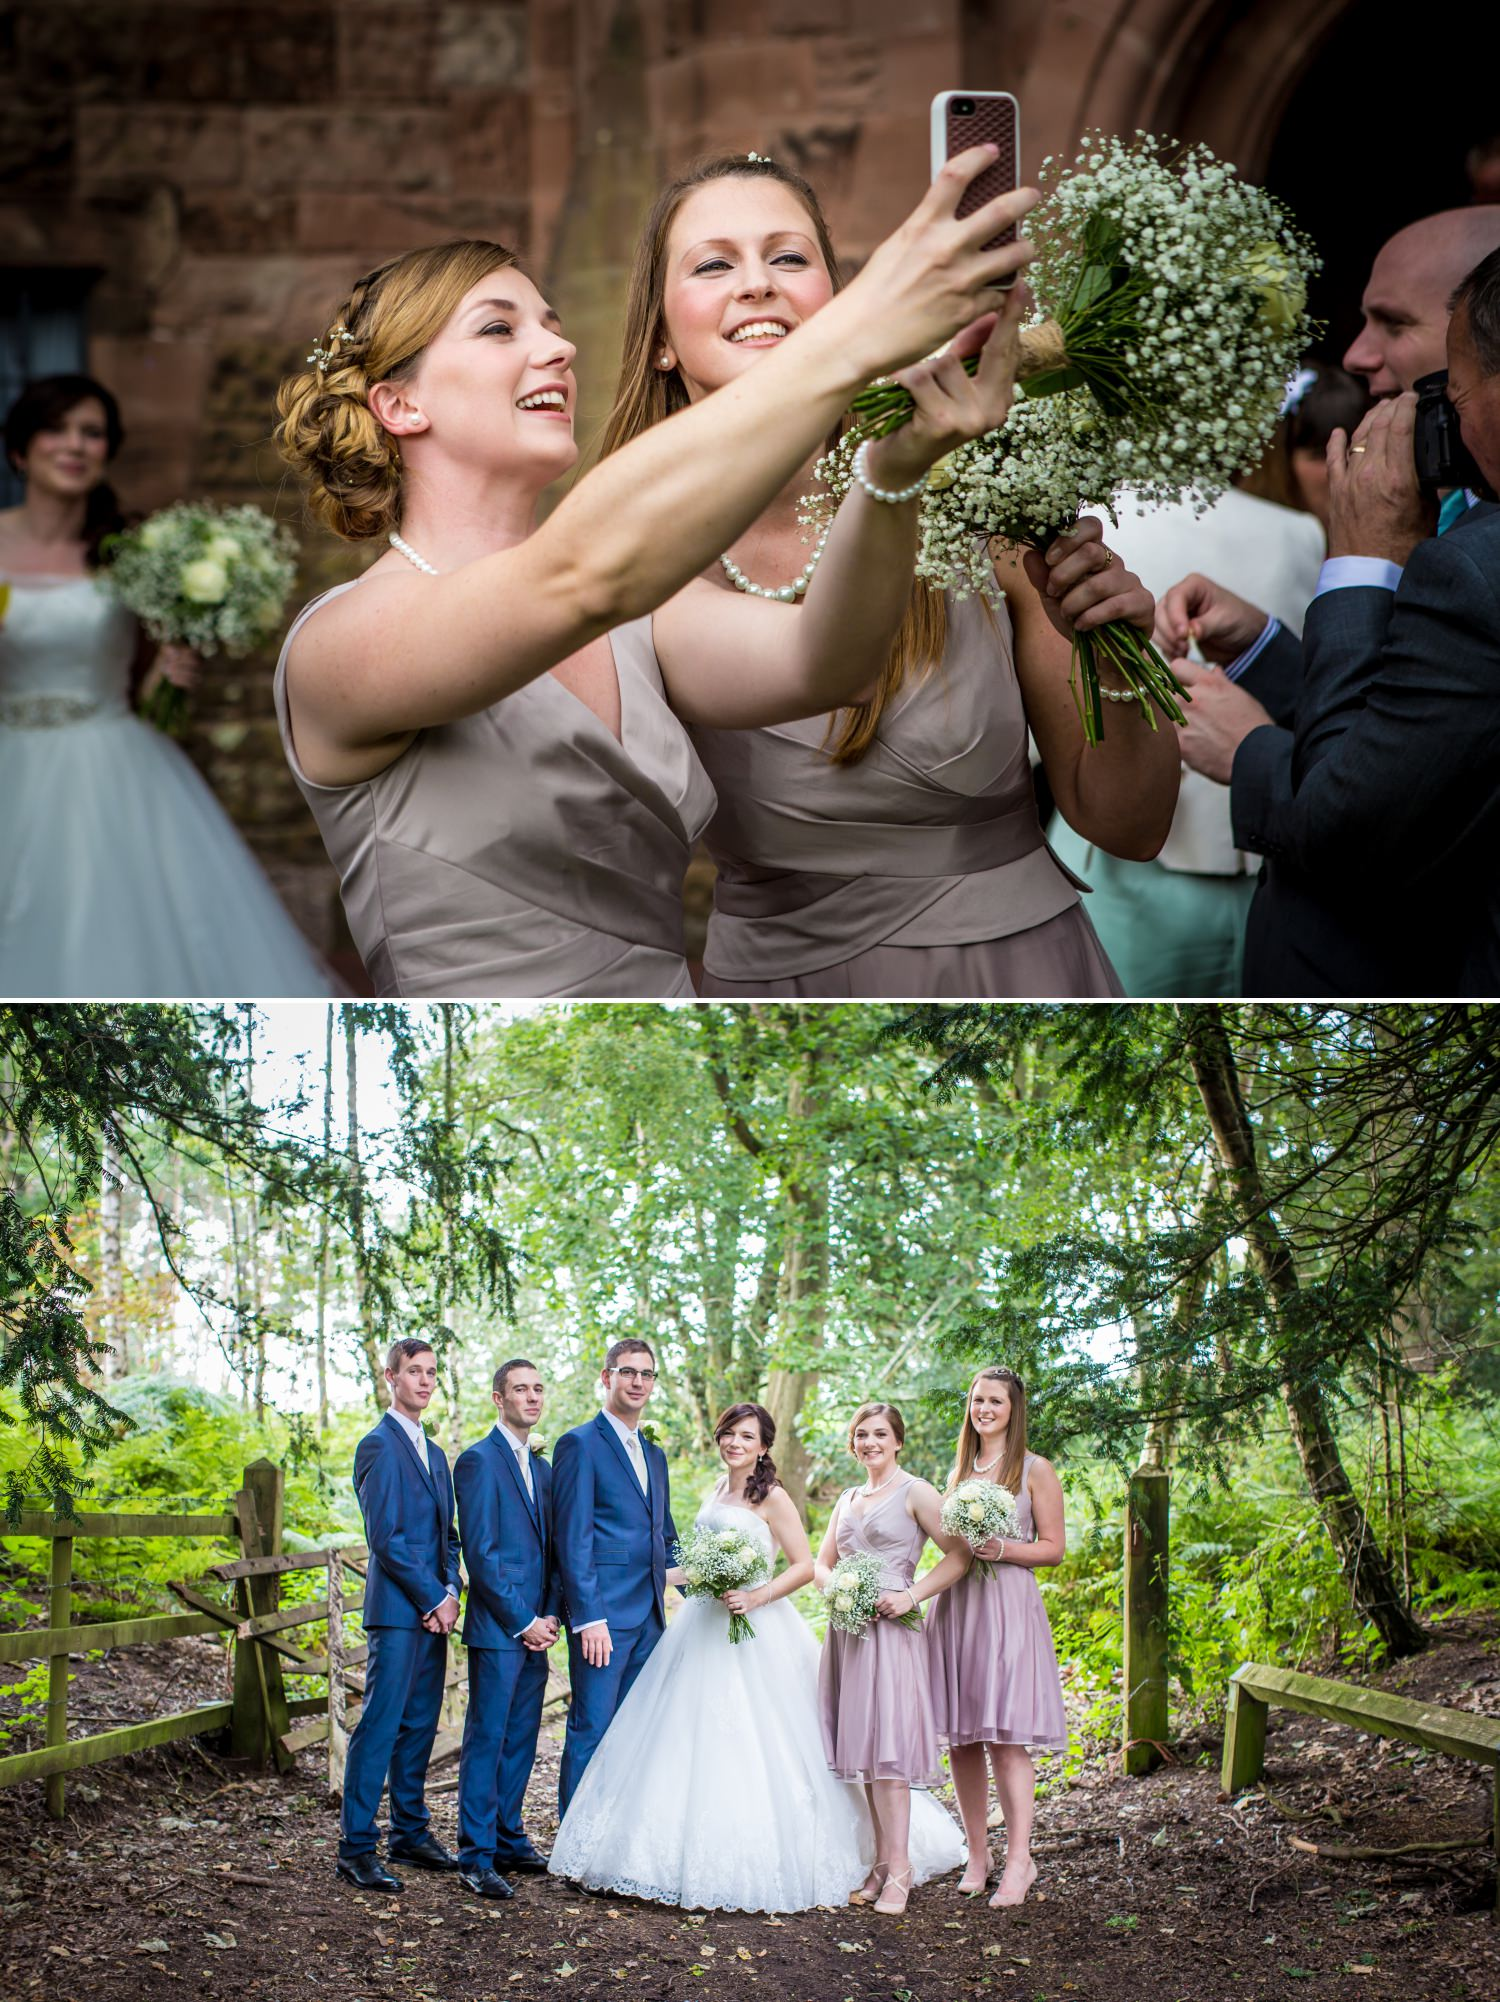 Wedding Photography of guests mingling at Peckforton Castle, Cheshire